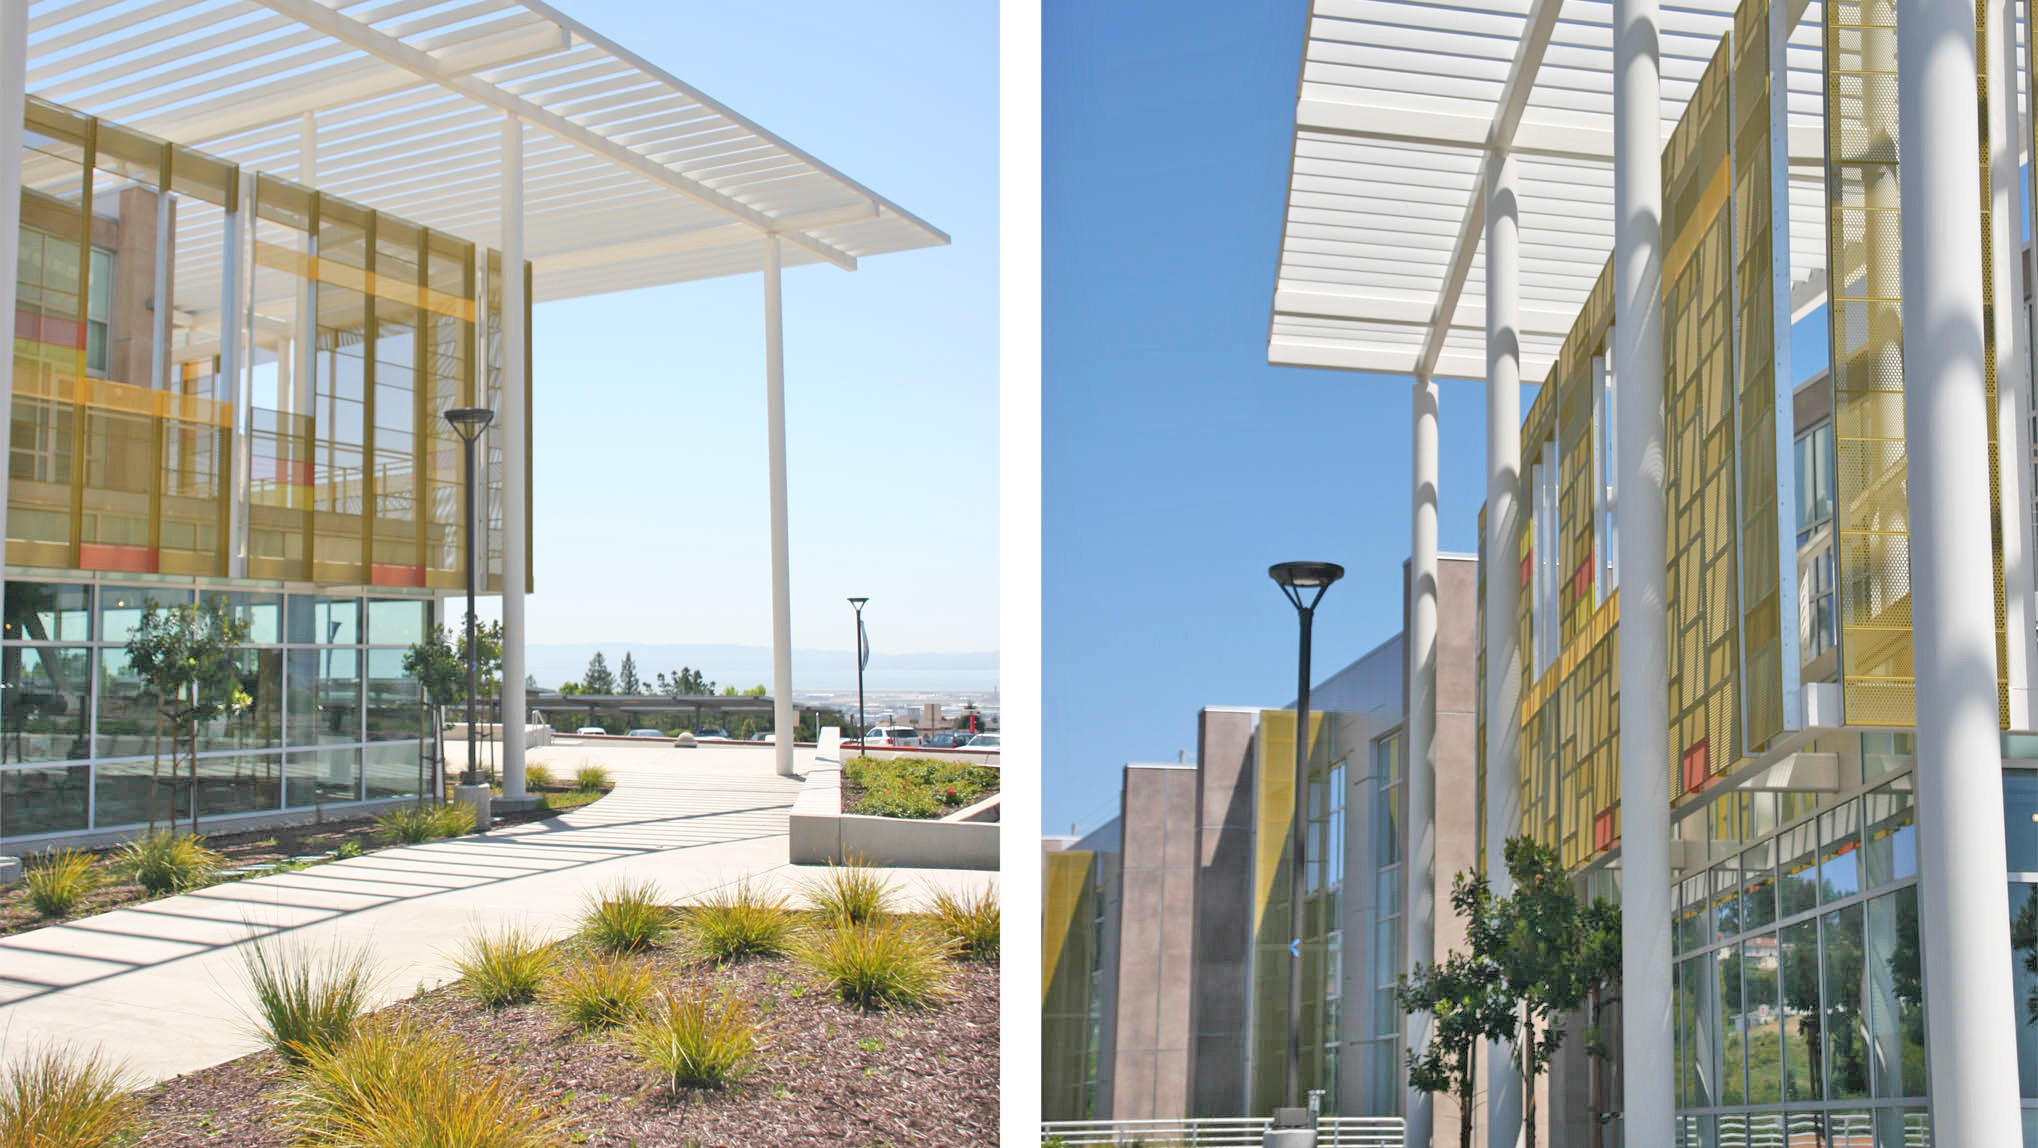 MERRITT COLLEGE - BARBARA LEE SCIENCE & ALLIED HEALTH BUILDING (W/ JK ARCHITECTURE) - OAKLAND, CA